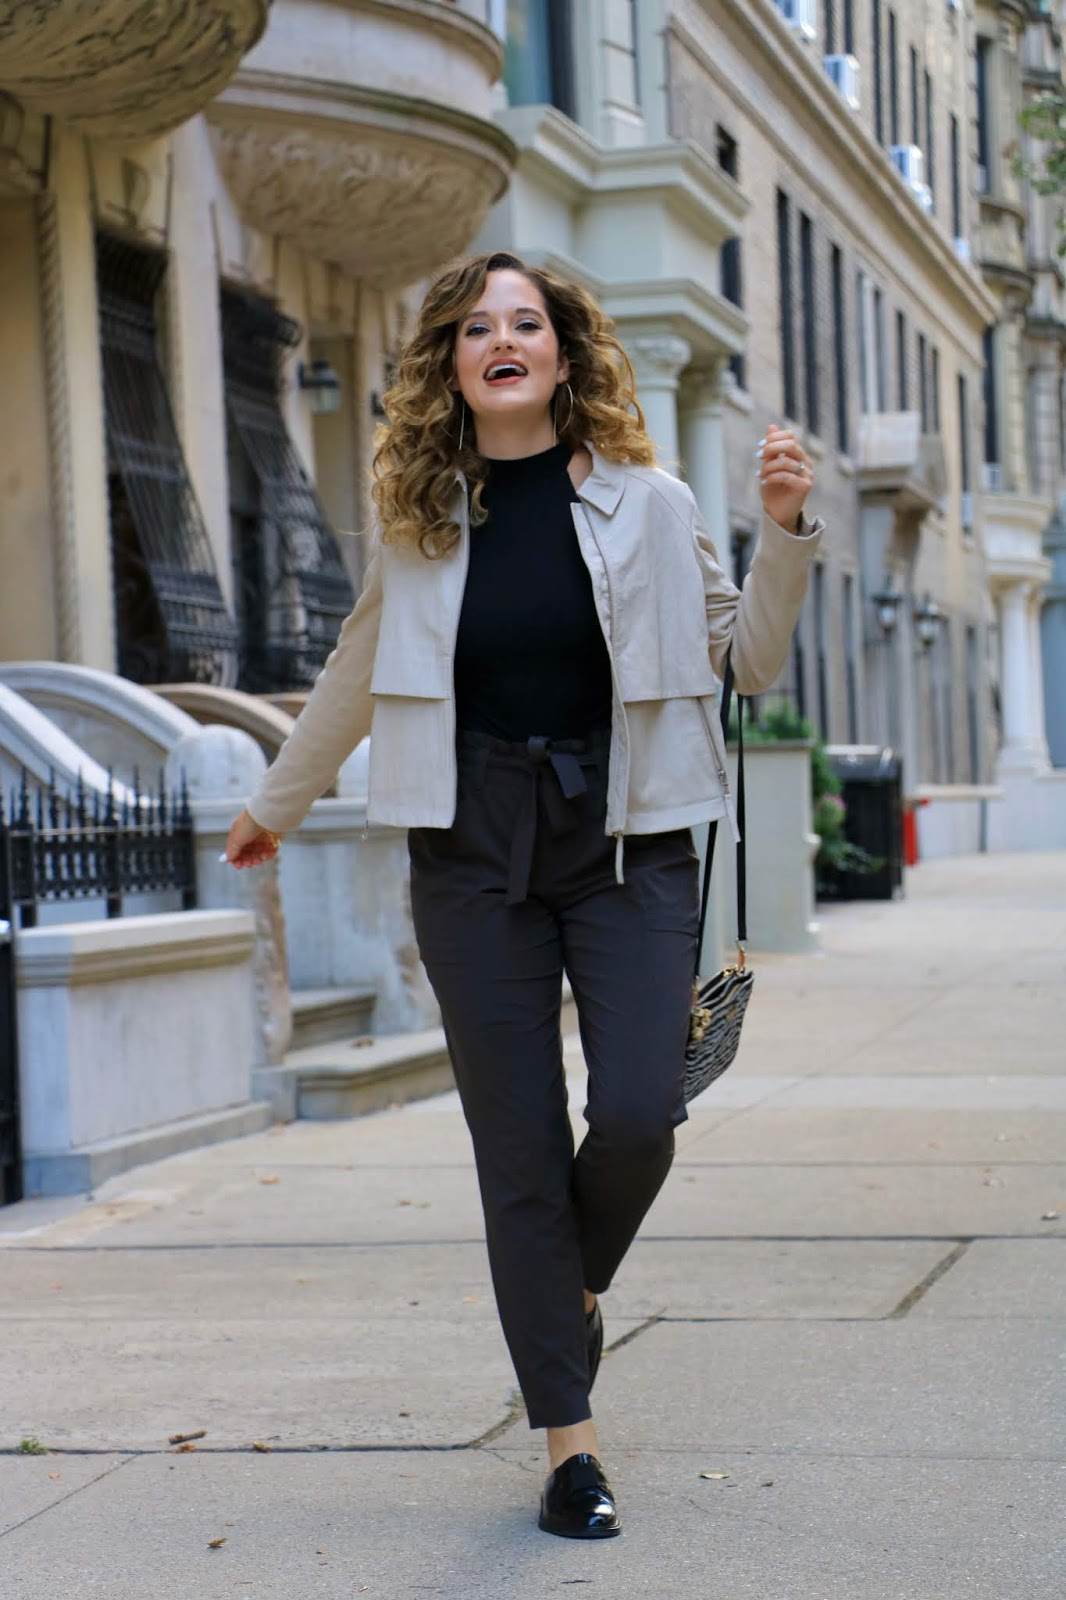 Nyc fashion blogger Kathleen Harper's fall fashion outfit ideas.